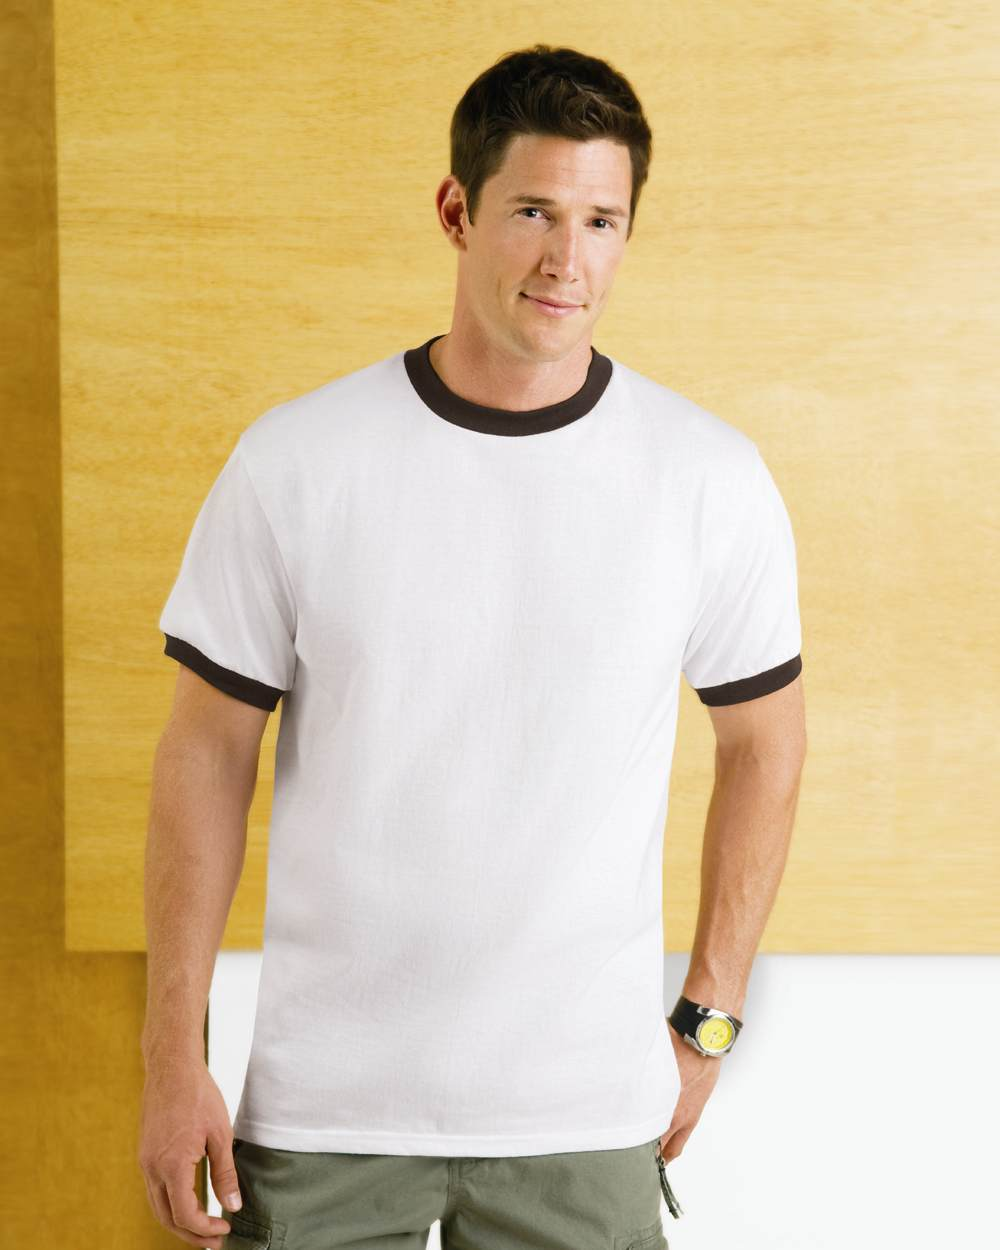 Find great deals on eBay for mens ringer tee. Shop with confidence.